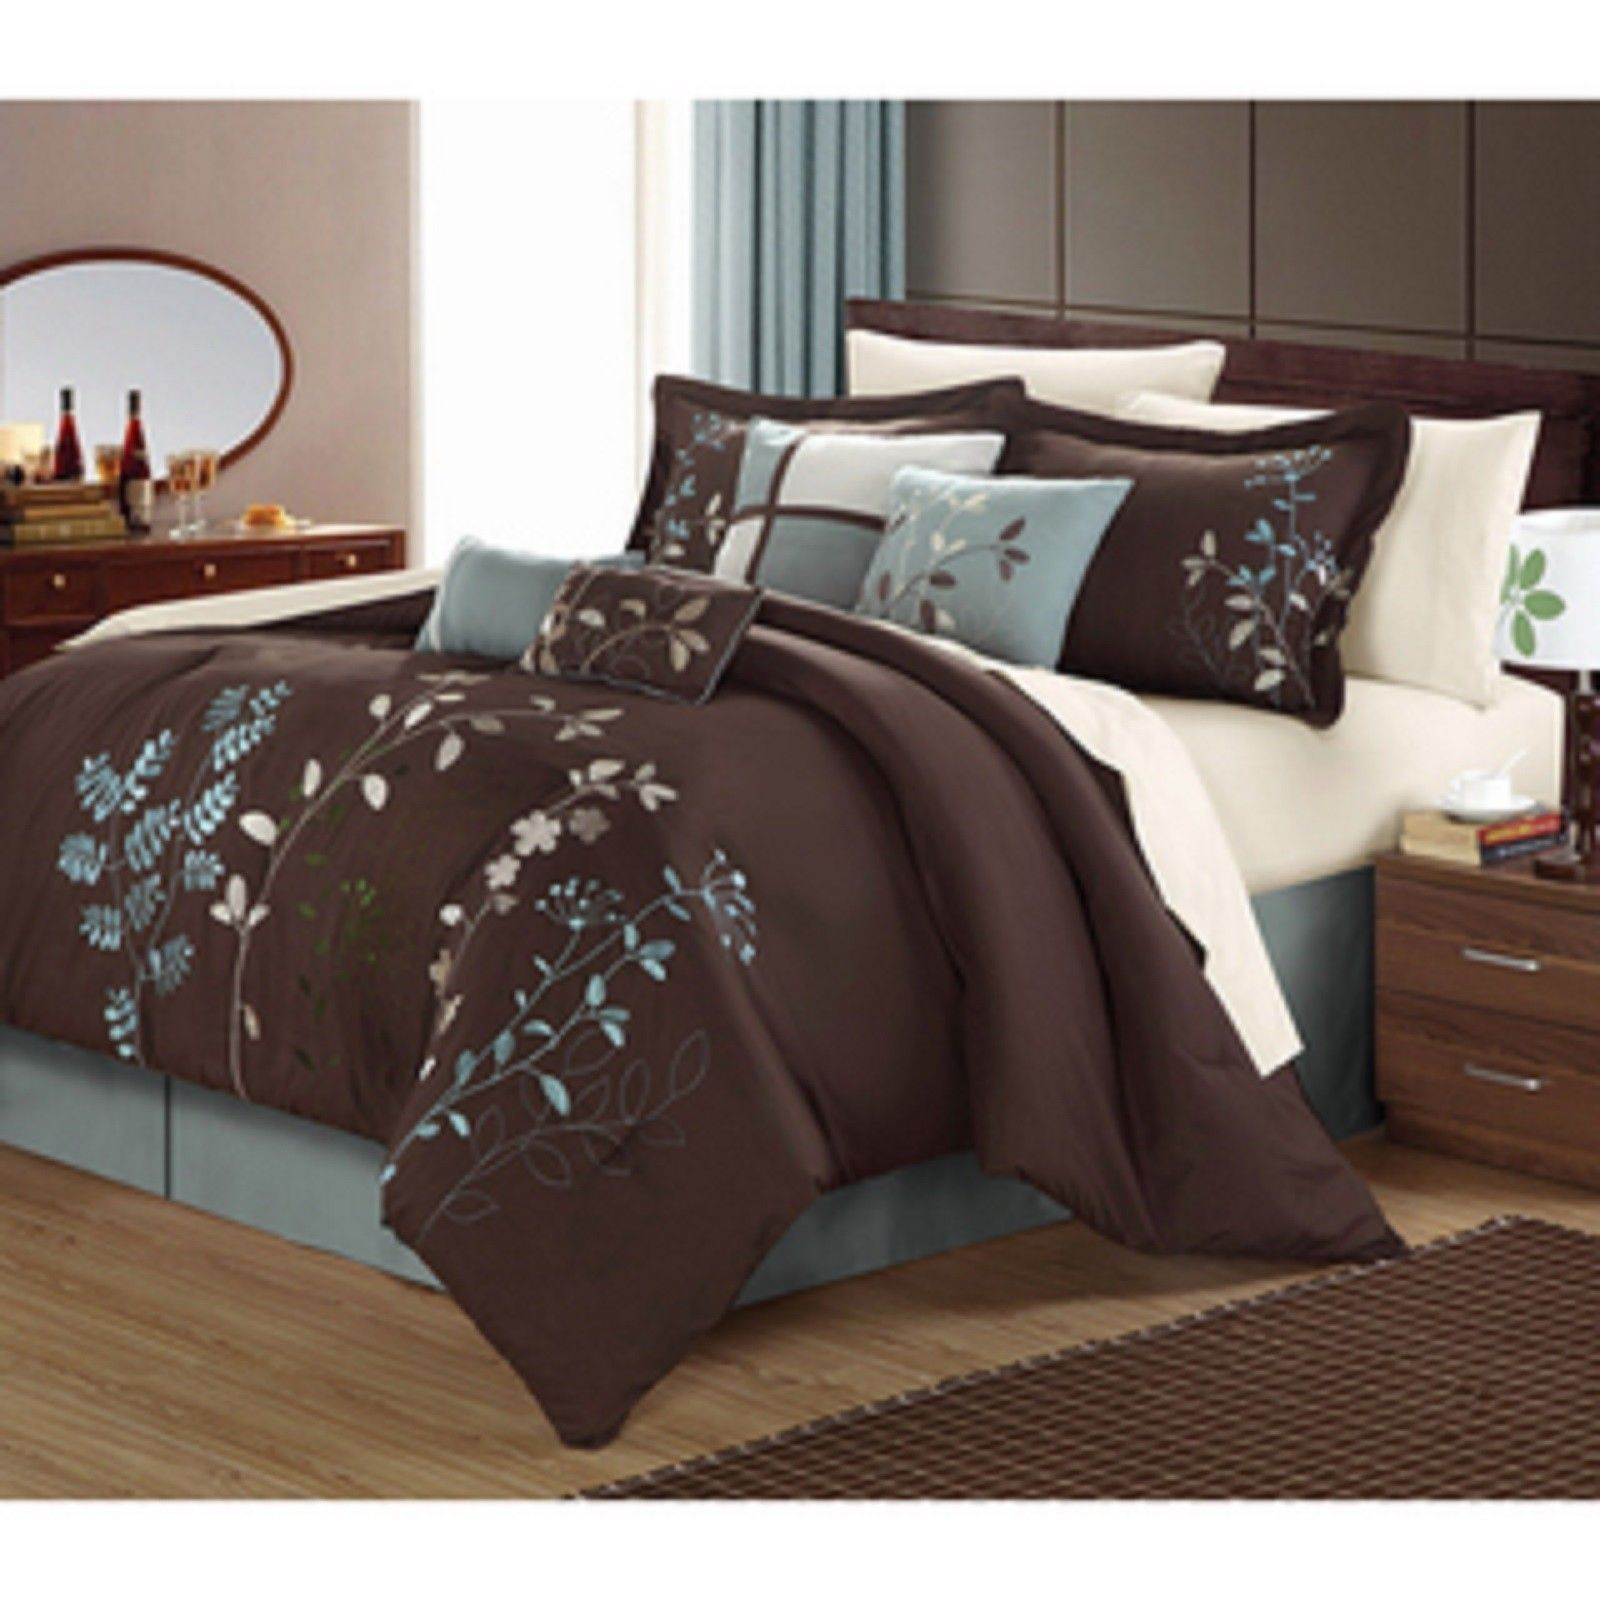 Luxury Bedding Sets Modern Comforter Set Queen King Teal Blue